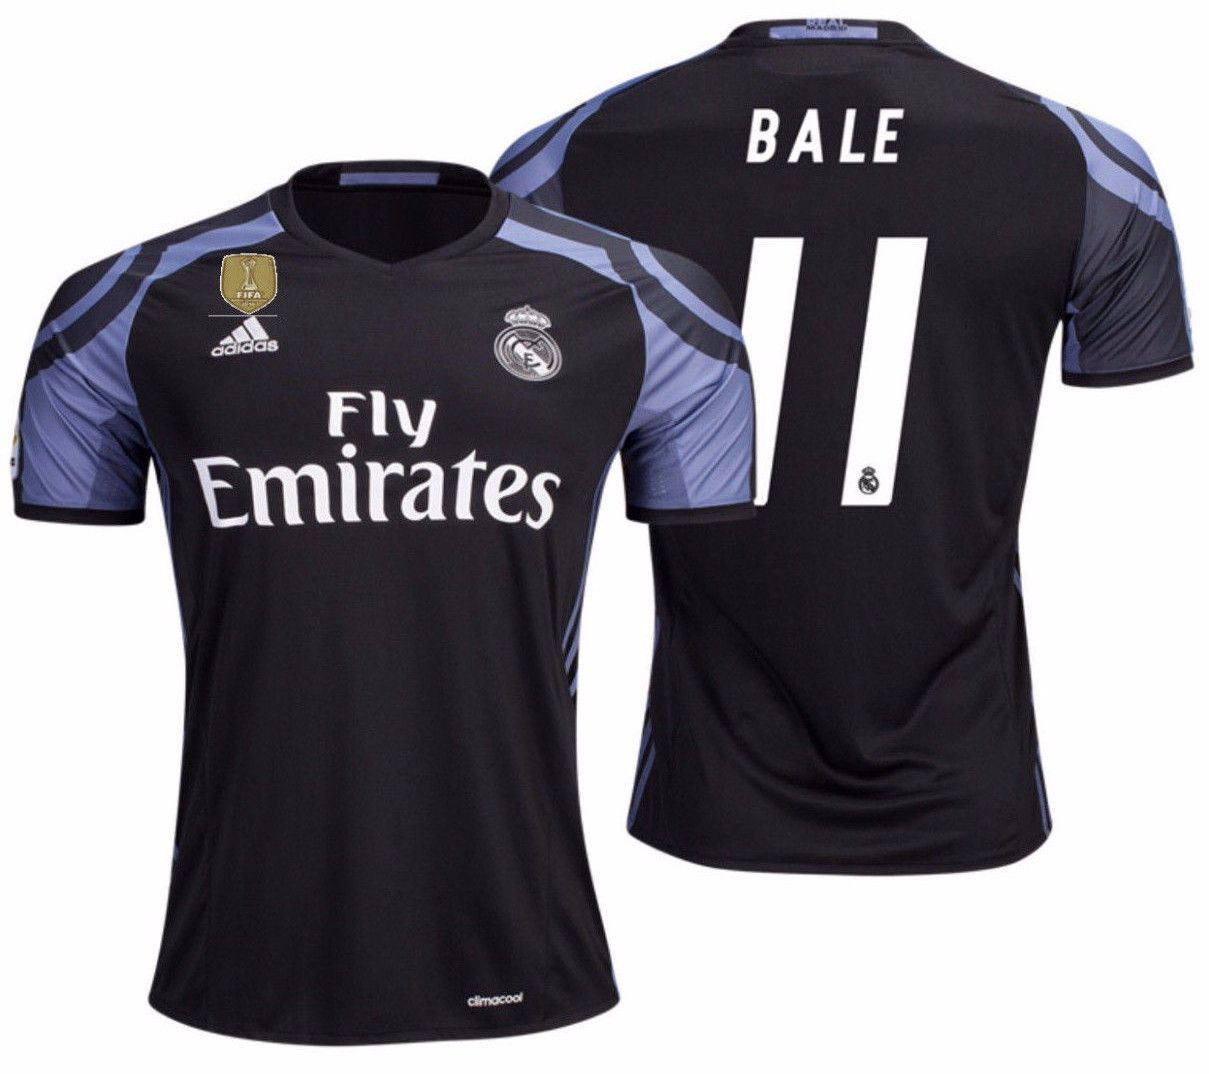 Adidas gareth bale real madrid third jersey 2016 17 cwc fifa patch ... df7dcada9